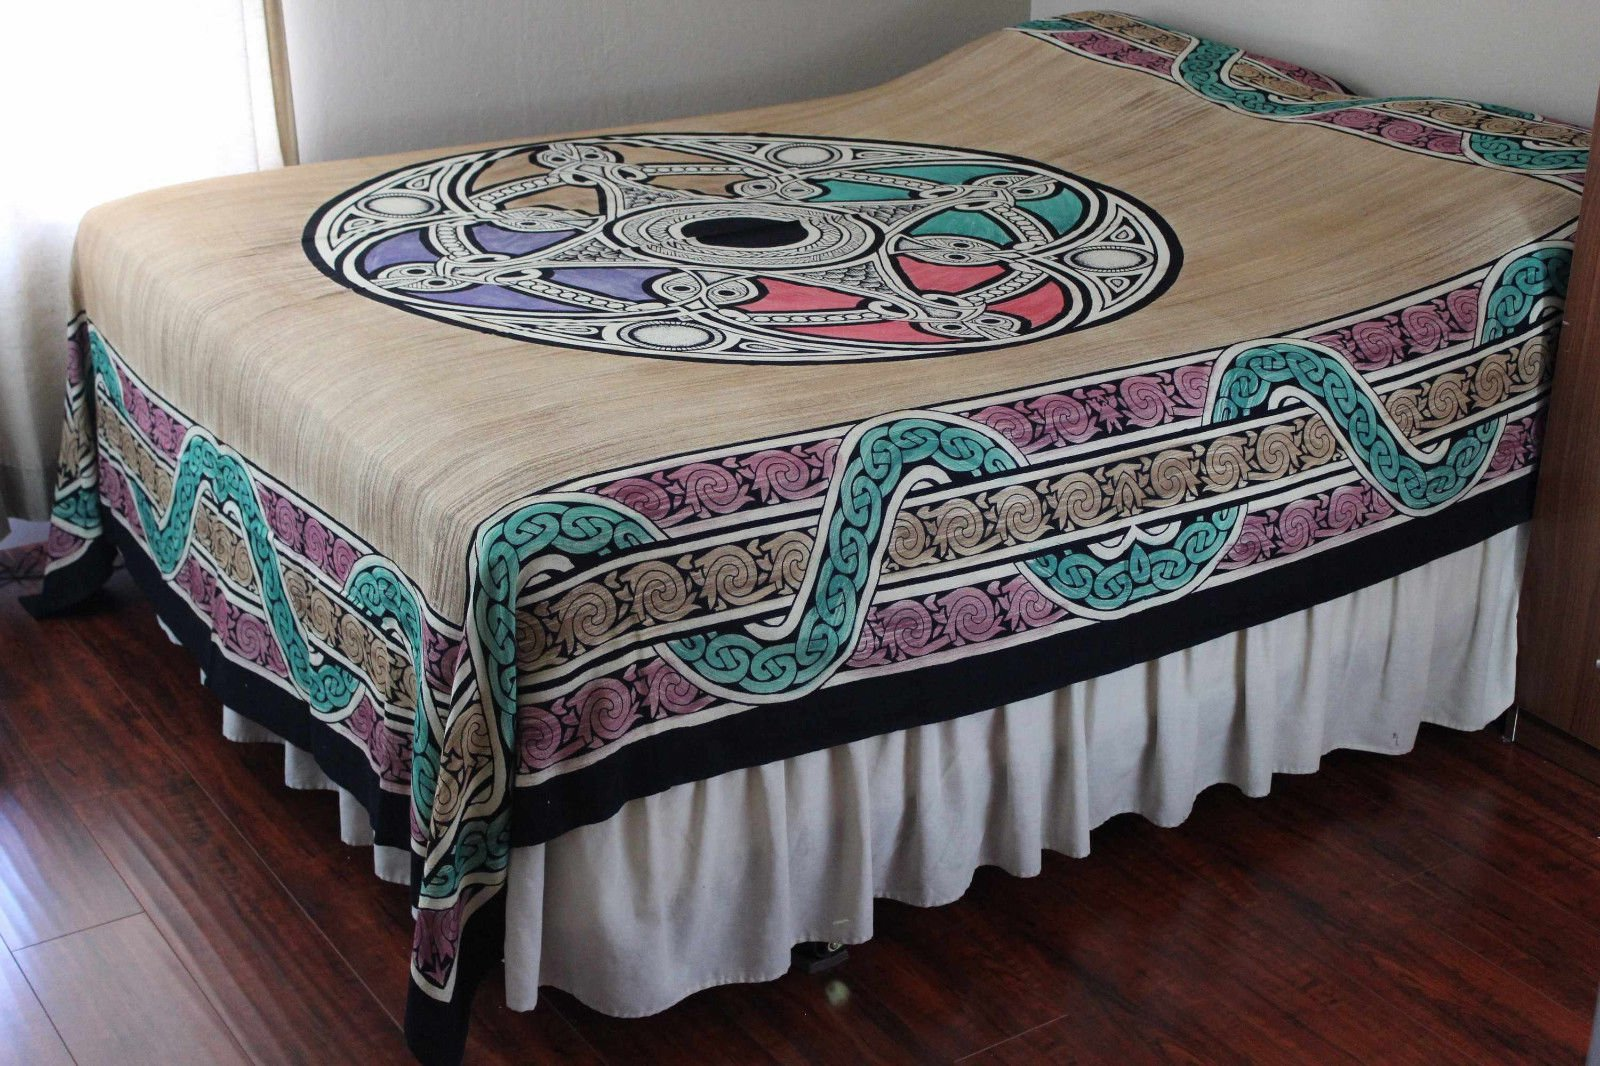 Celtic Tapestry, Celtic Bedspread Queen, Thin Cotton Throw Beach Blanket Bed sheet, Celtic Bedding Queen Dorm Tapestry Tan Beige Queen 106 x 106 inches